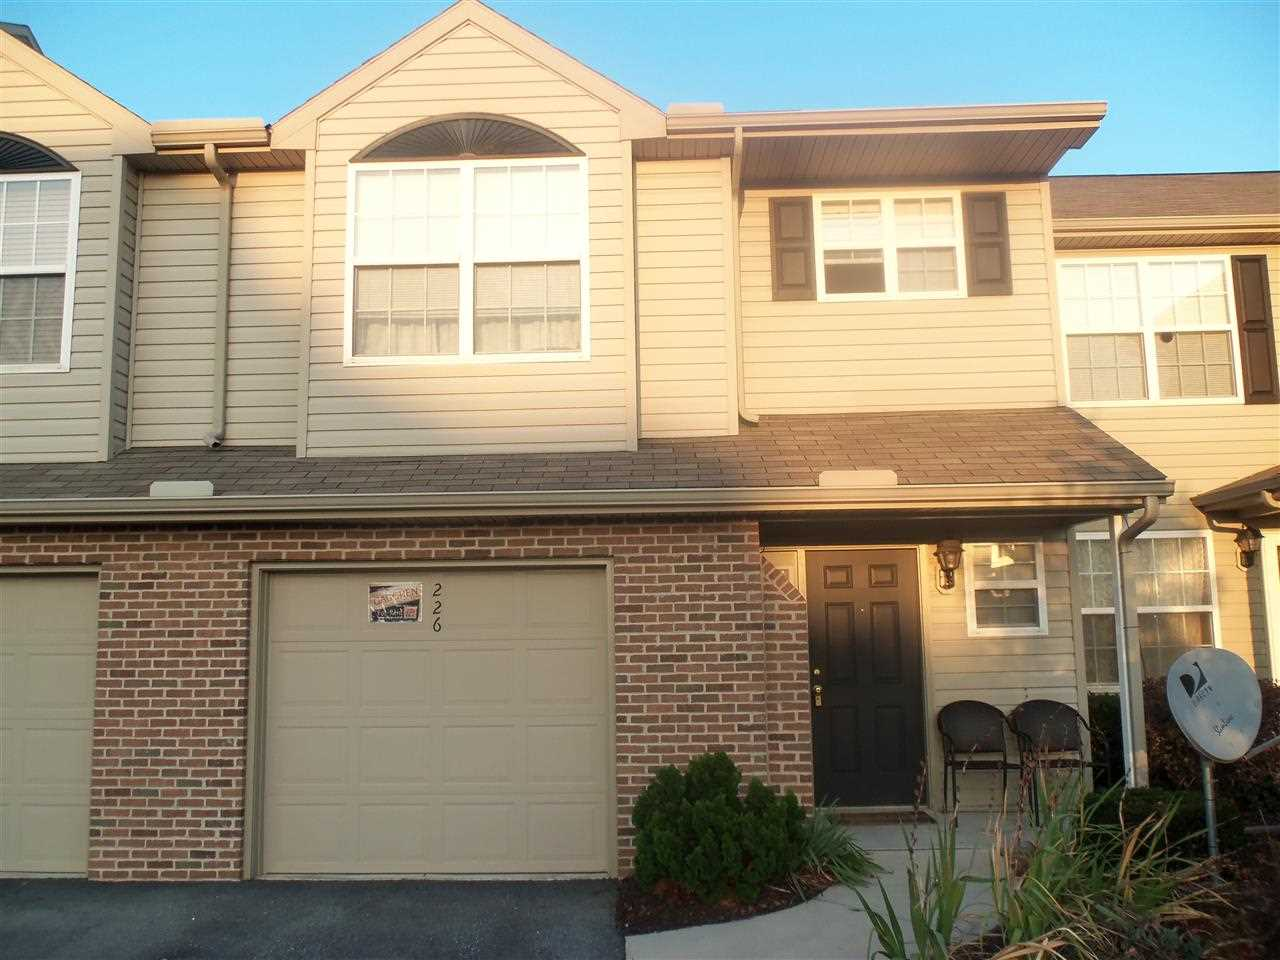 Rental Homes for Rent, ListingId:30634553, location: 226 Osprey Lane Hummelstown 17036